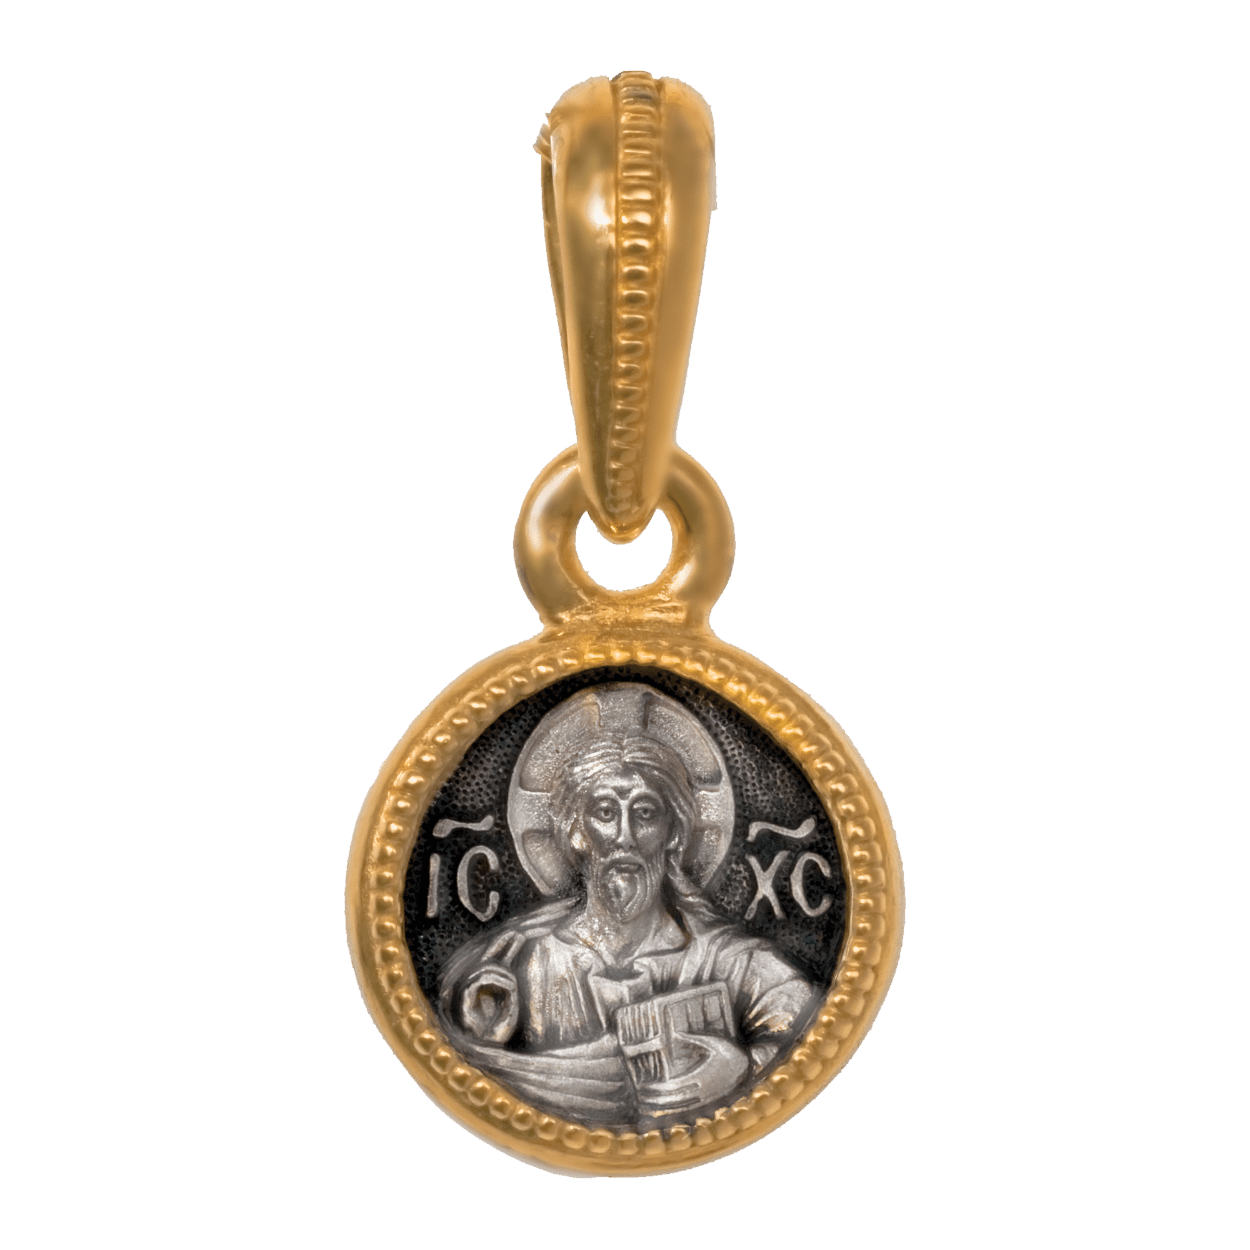 Russian-Orthodox-icon-silver-medal-pendant-THE-LORD-ALMIGHTY-THEOTOKOS-ASSUNTA-Master-Jeweler-Fedorov